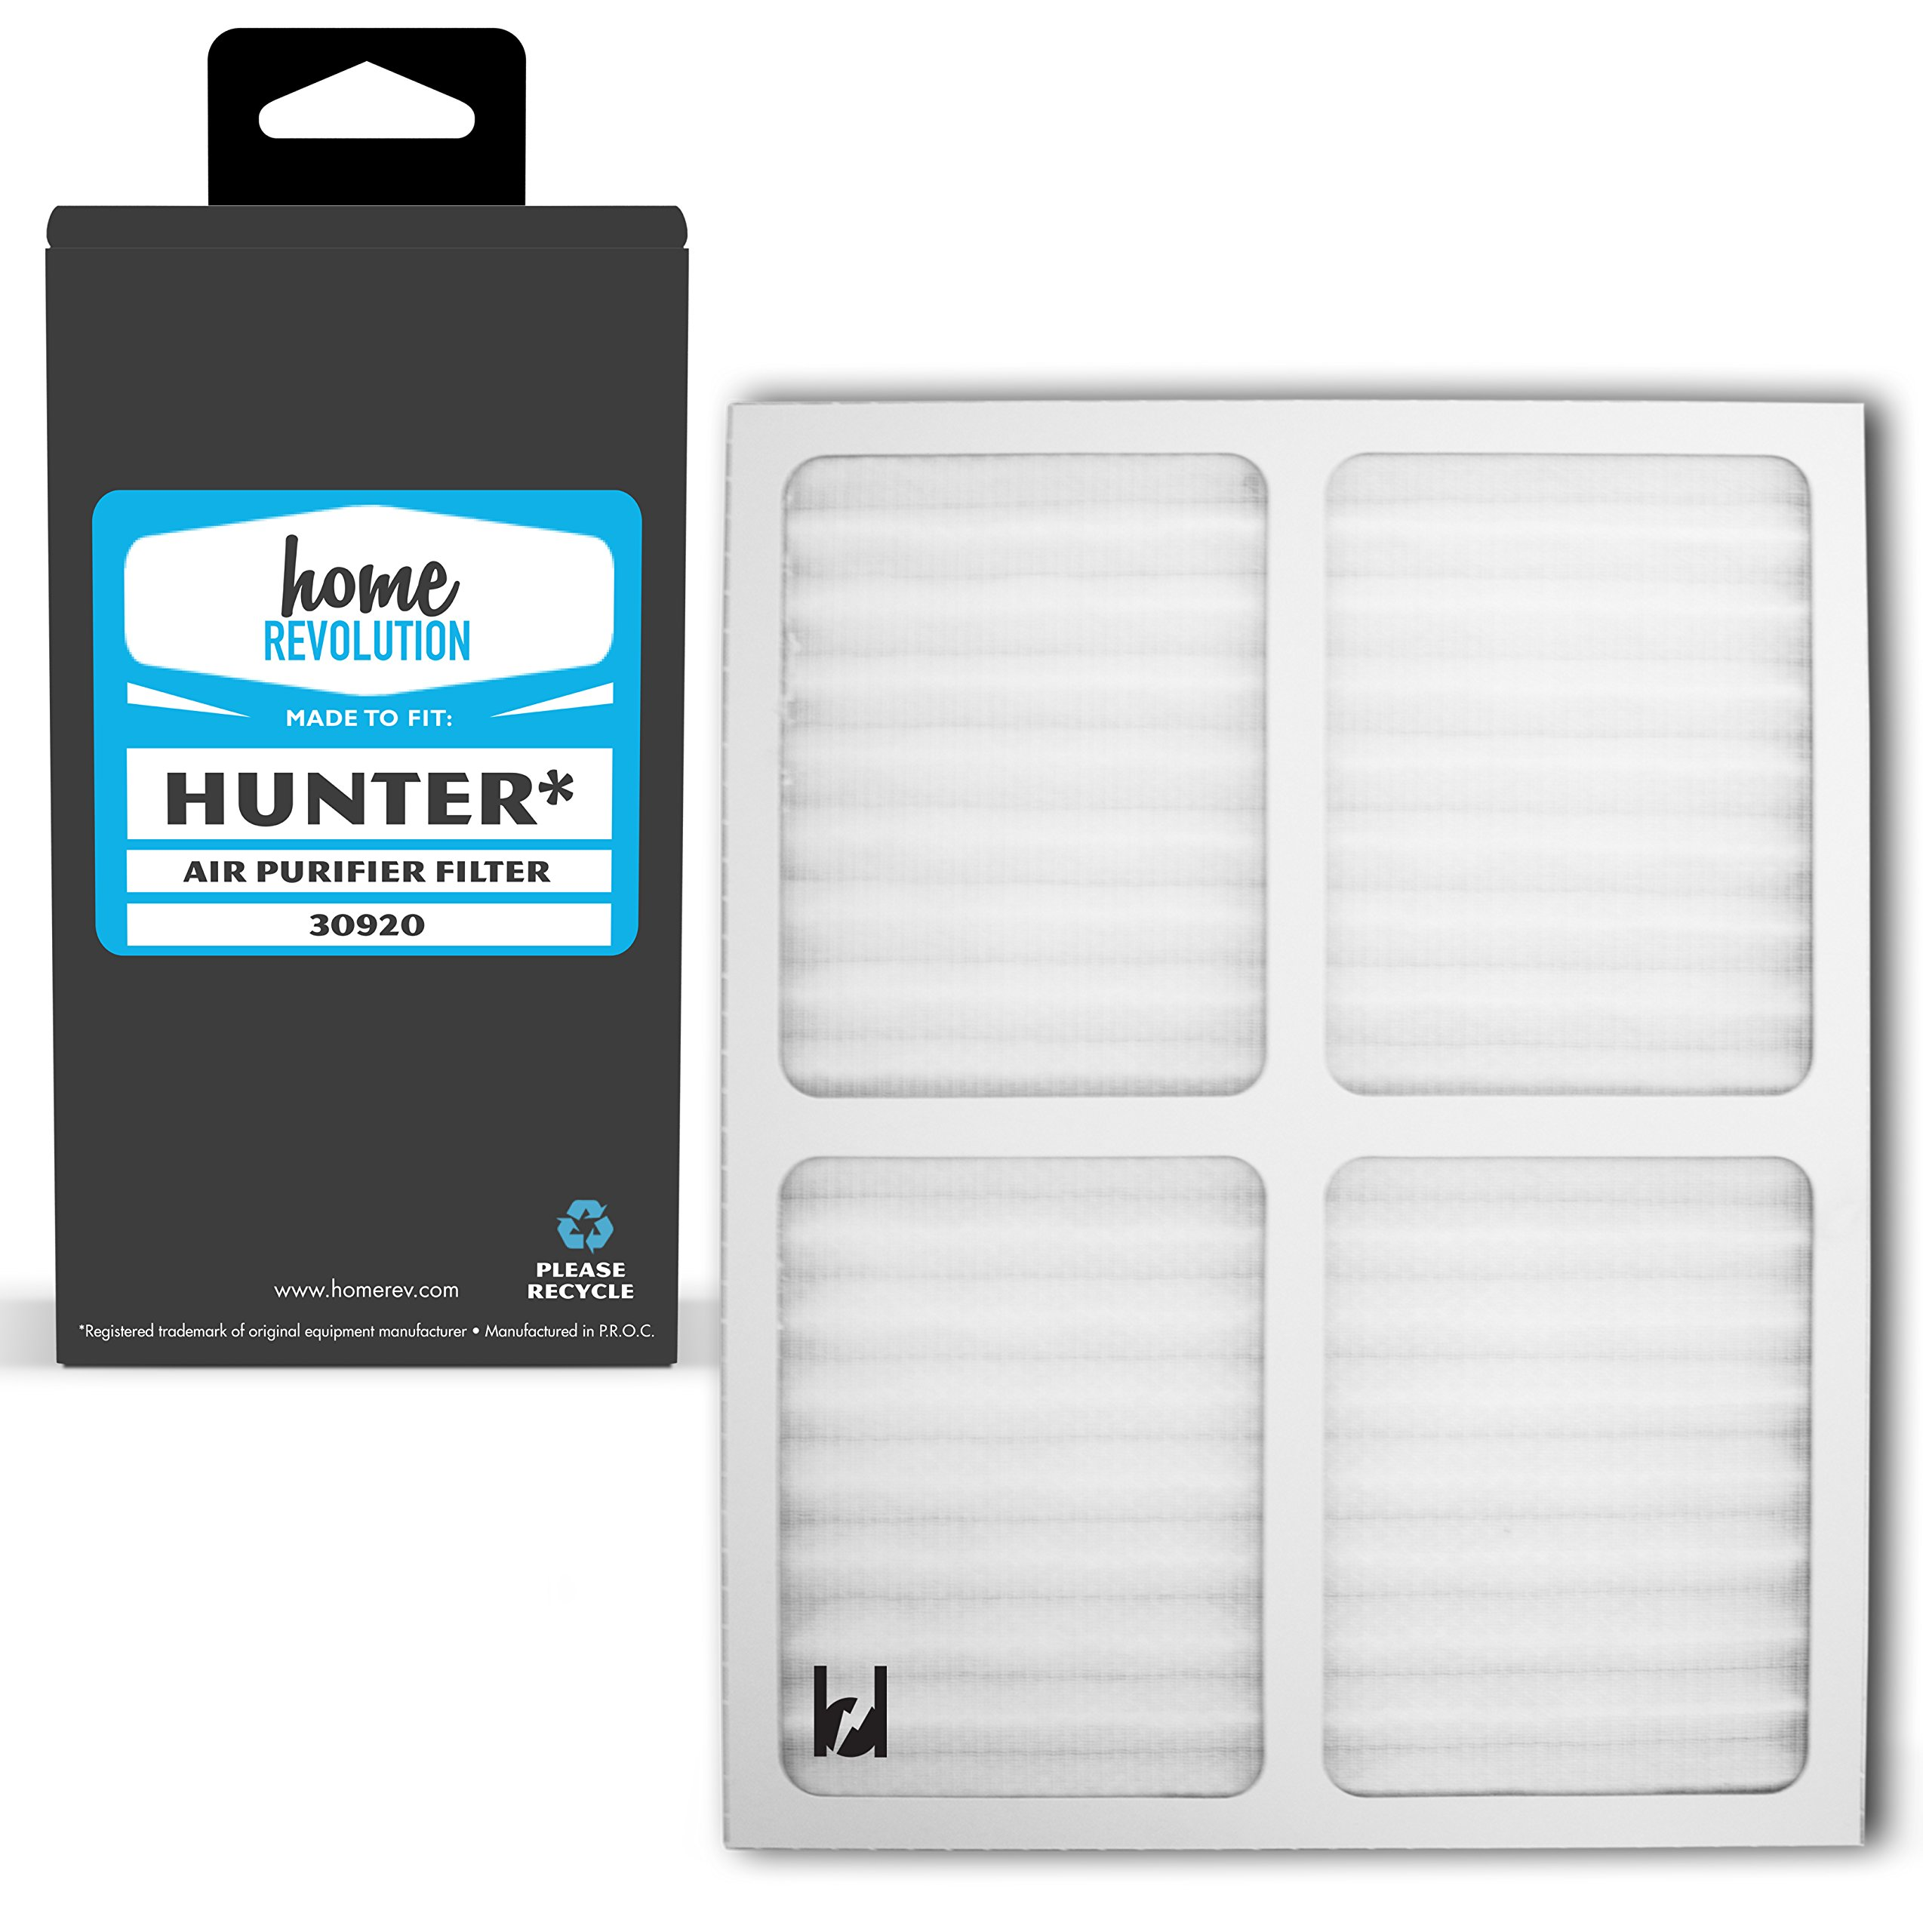 Home Revolution Replacement HEPA Filter, Fits Hunter Part 30920 and 30050, 30055, 30065, 37065, 30075, 30080 & 30177 Air Purifier Models